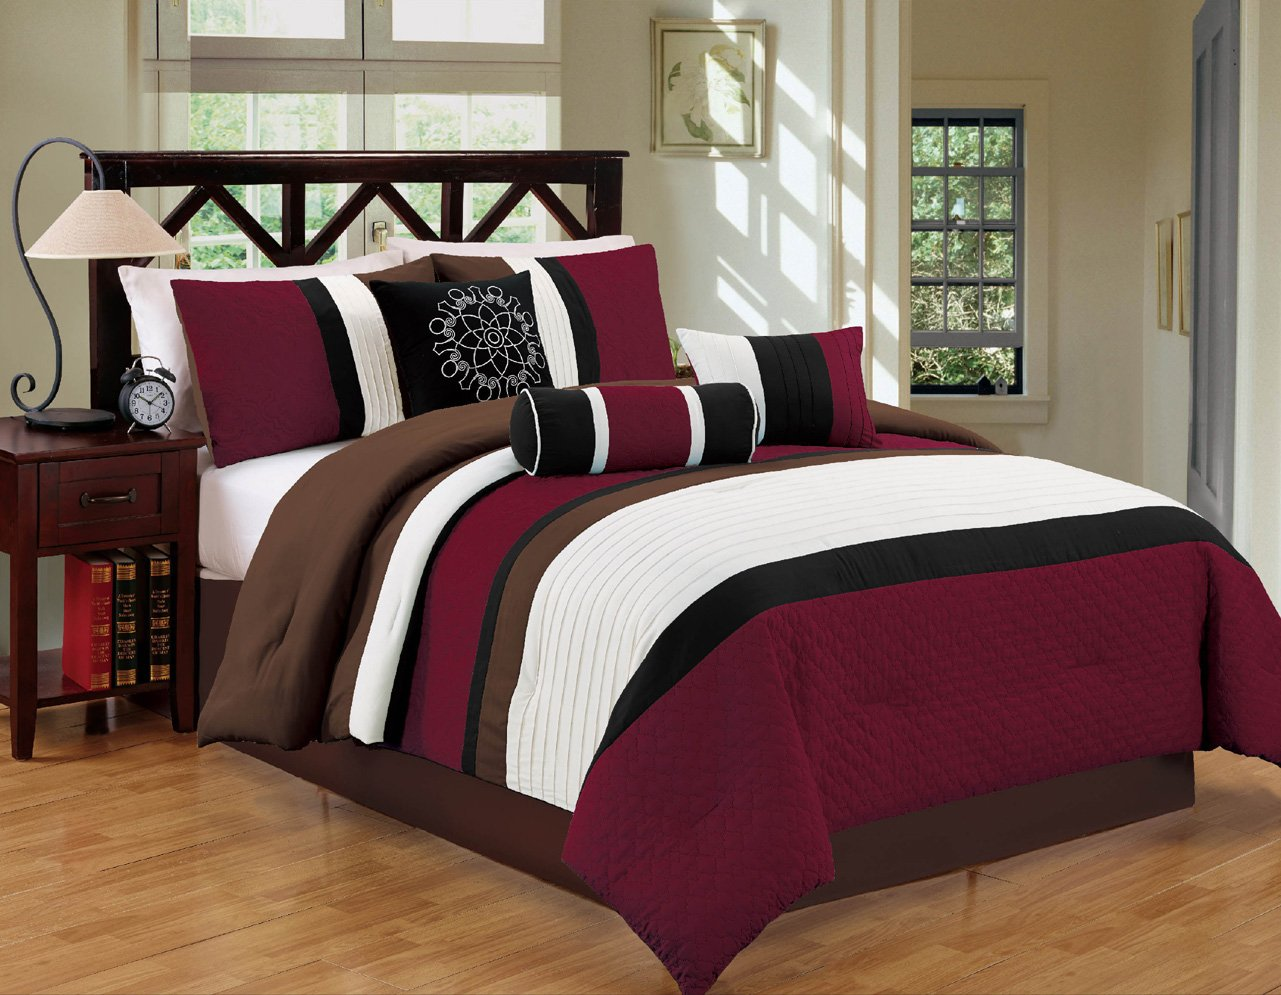 Modern 7 Piece Bedding Burgundy Brown White Black Pin Tuck Embroidered King